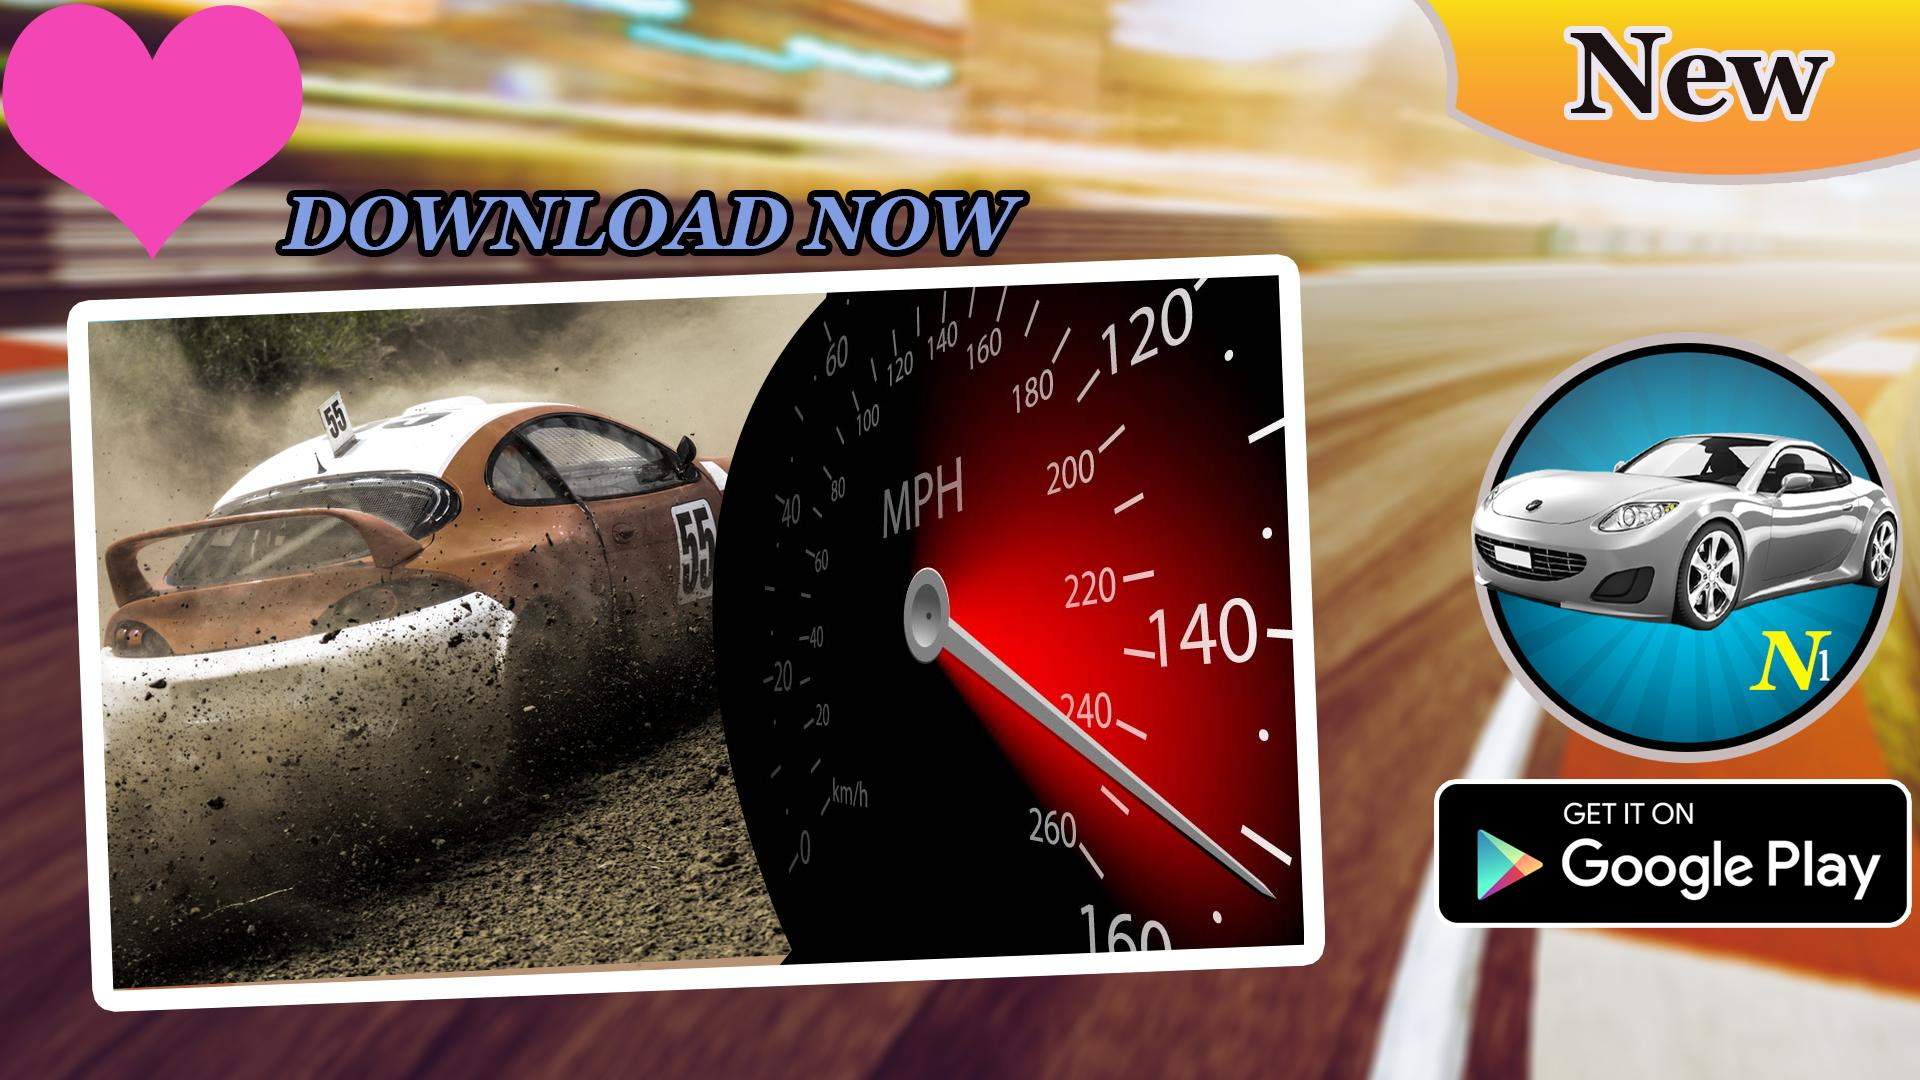 race car games offline for Android - APK Download